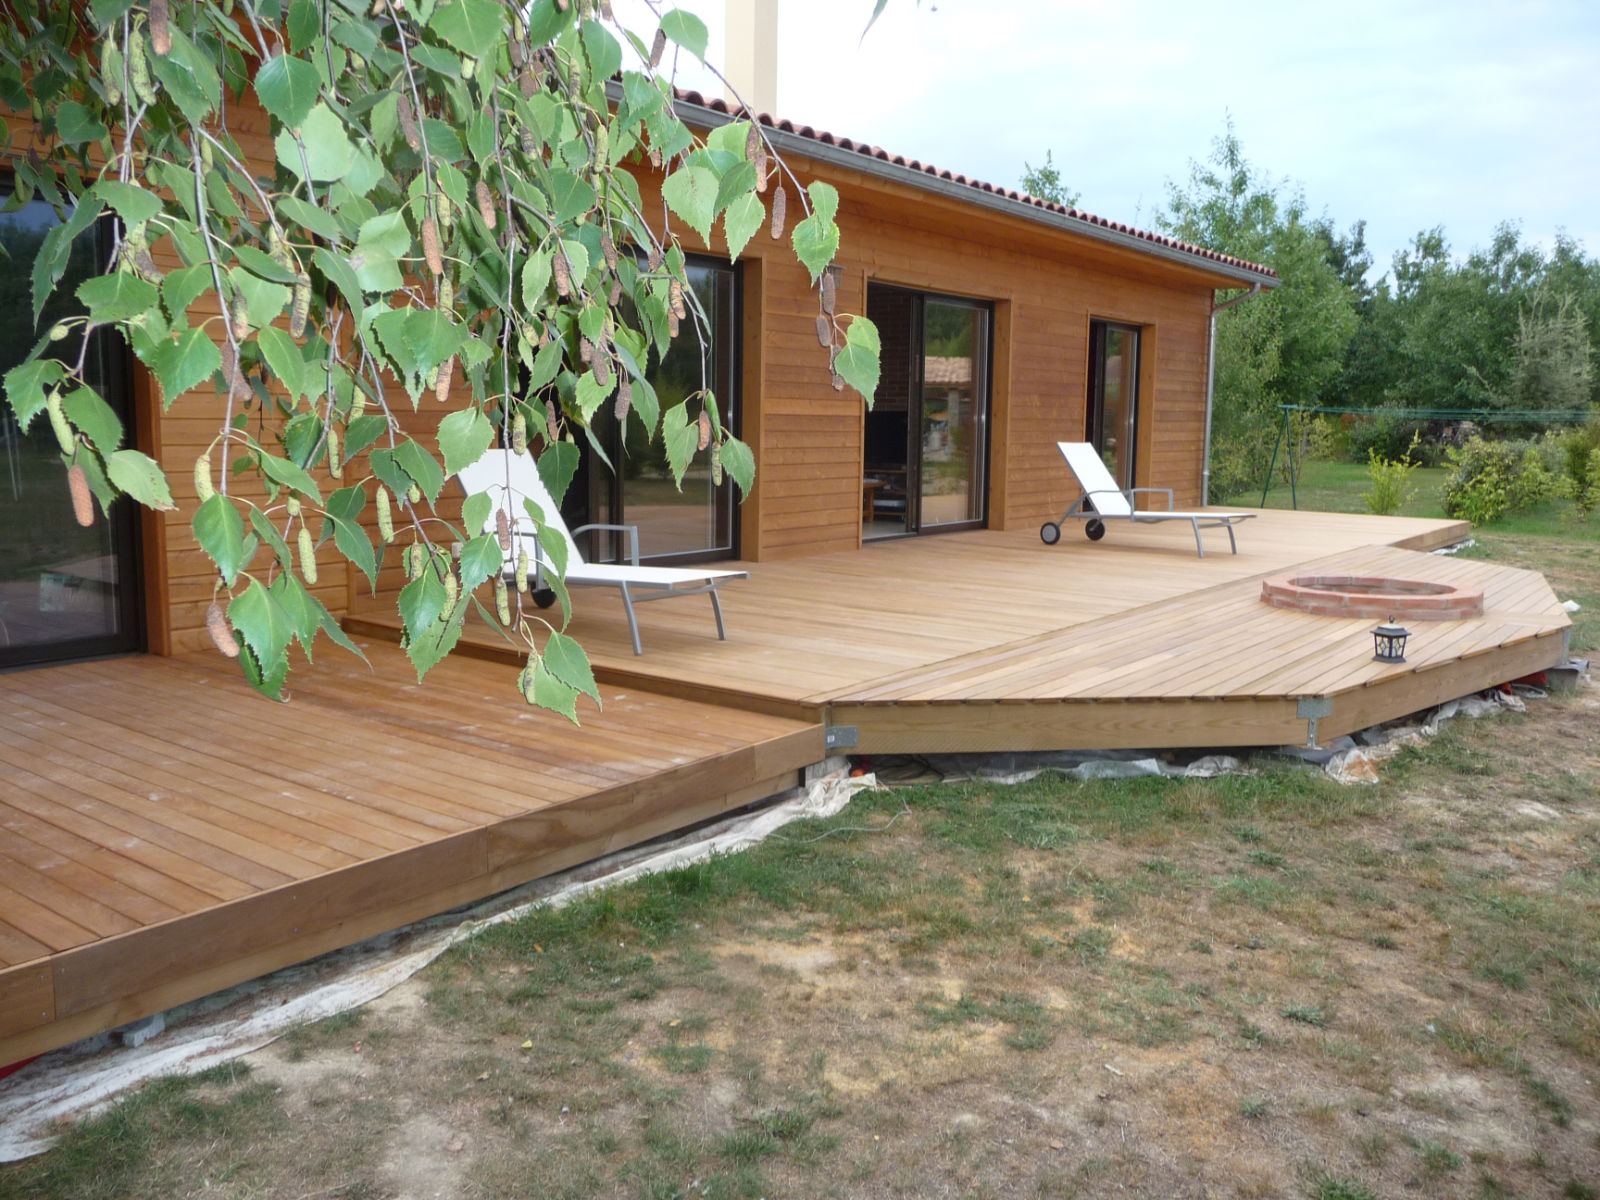 Construction d 39 une terrasse en bois - Photo de terrasse en bois ...